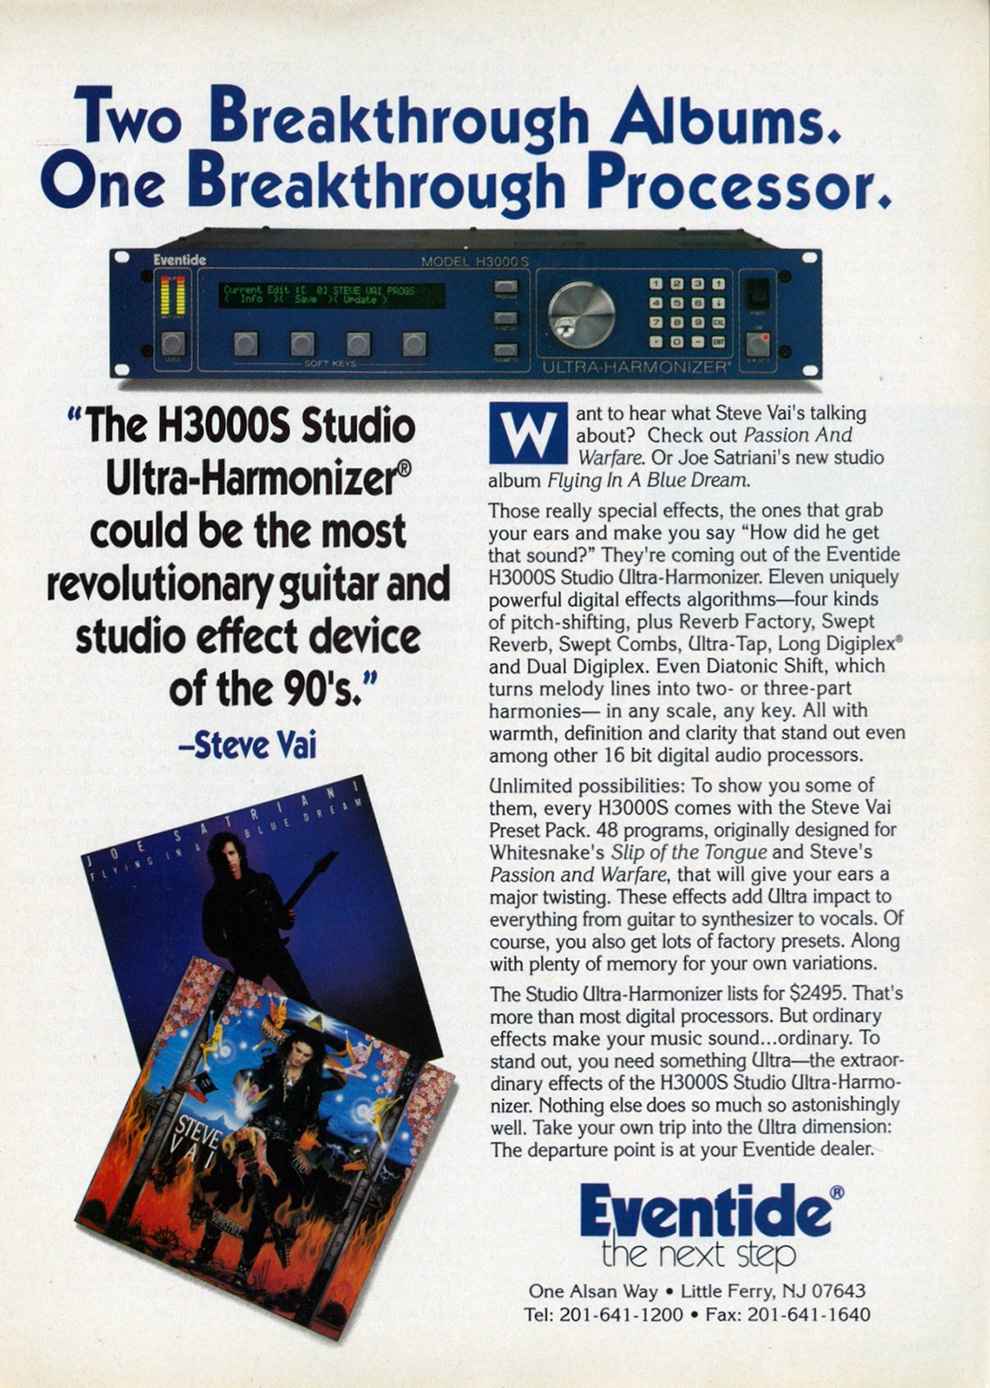 H3000 Advertisement featuring Steve Vai